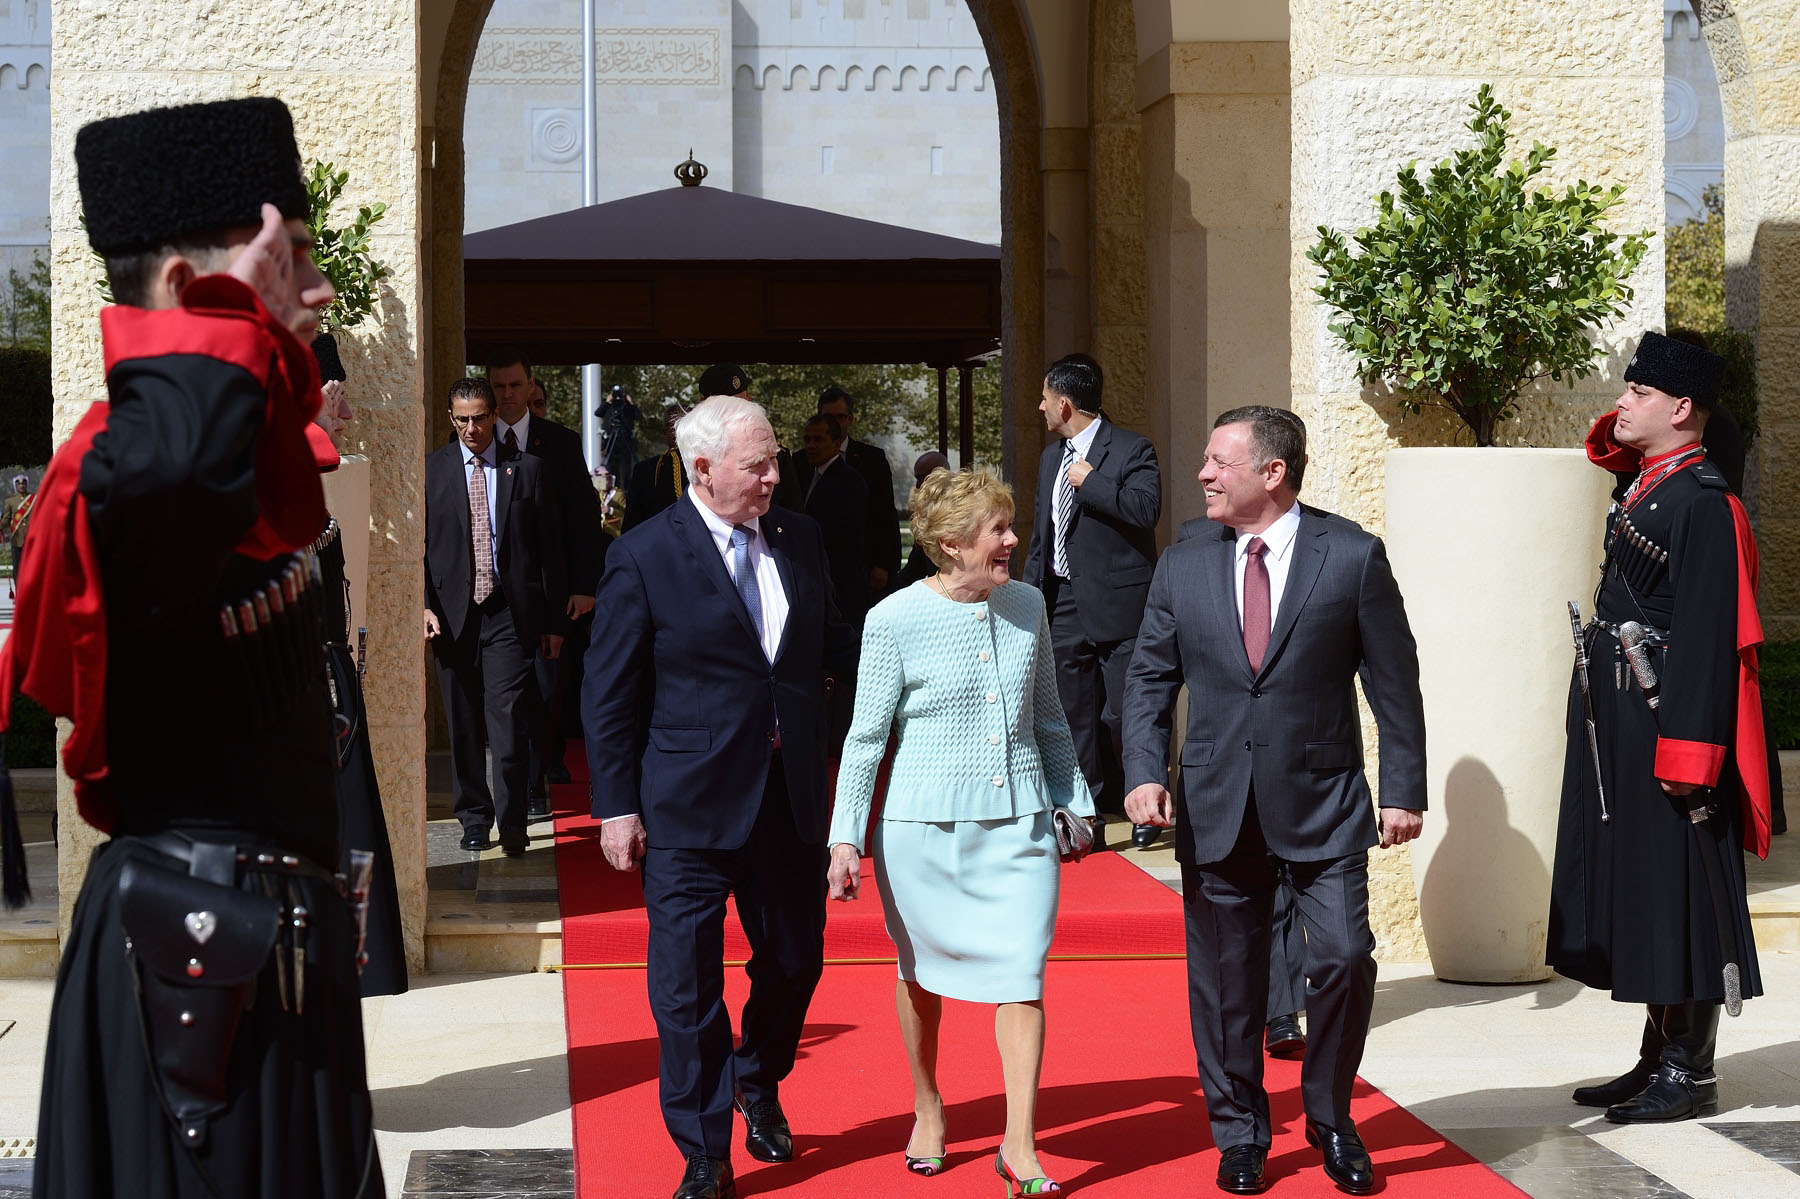 David Johnston is the first Canadian governor general to conduct a State visit to Jordan.